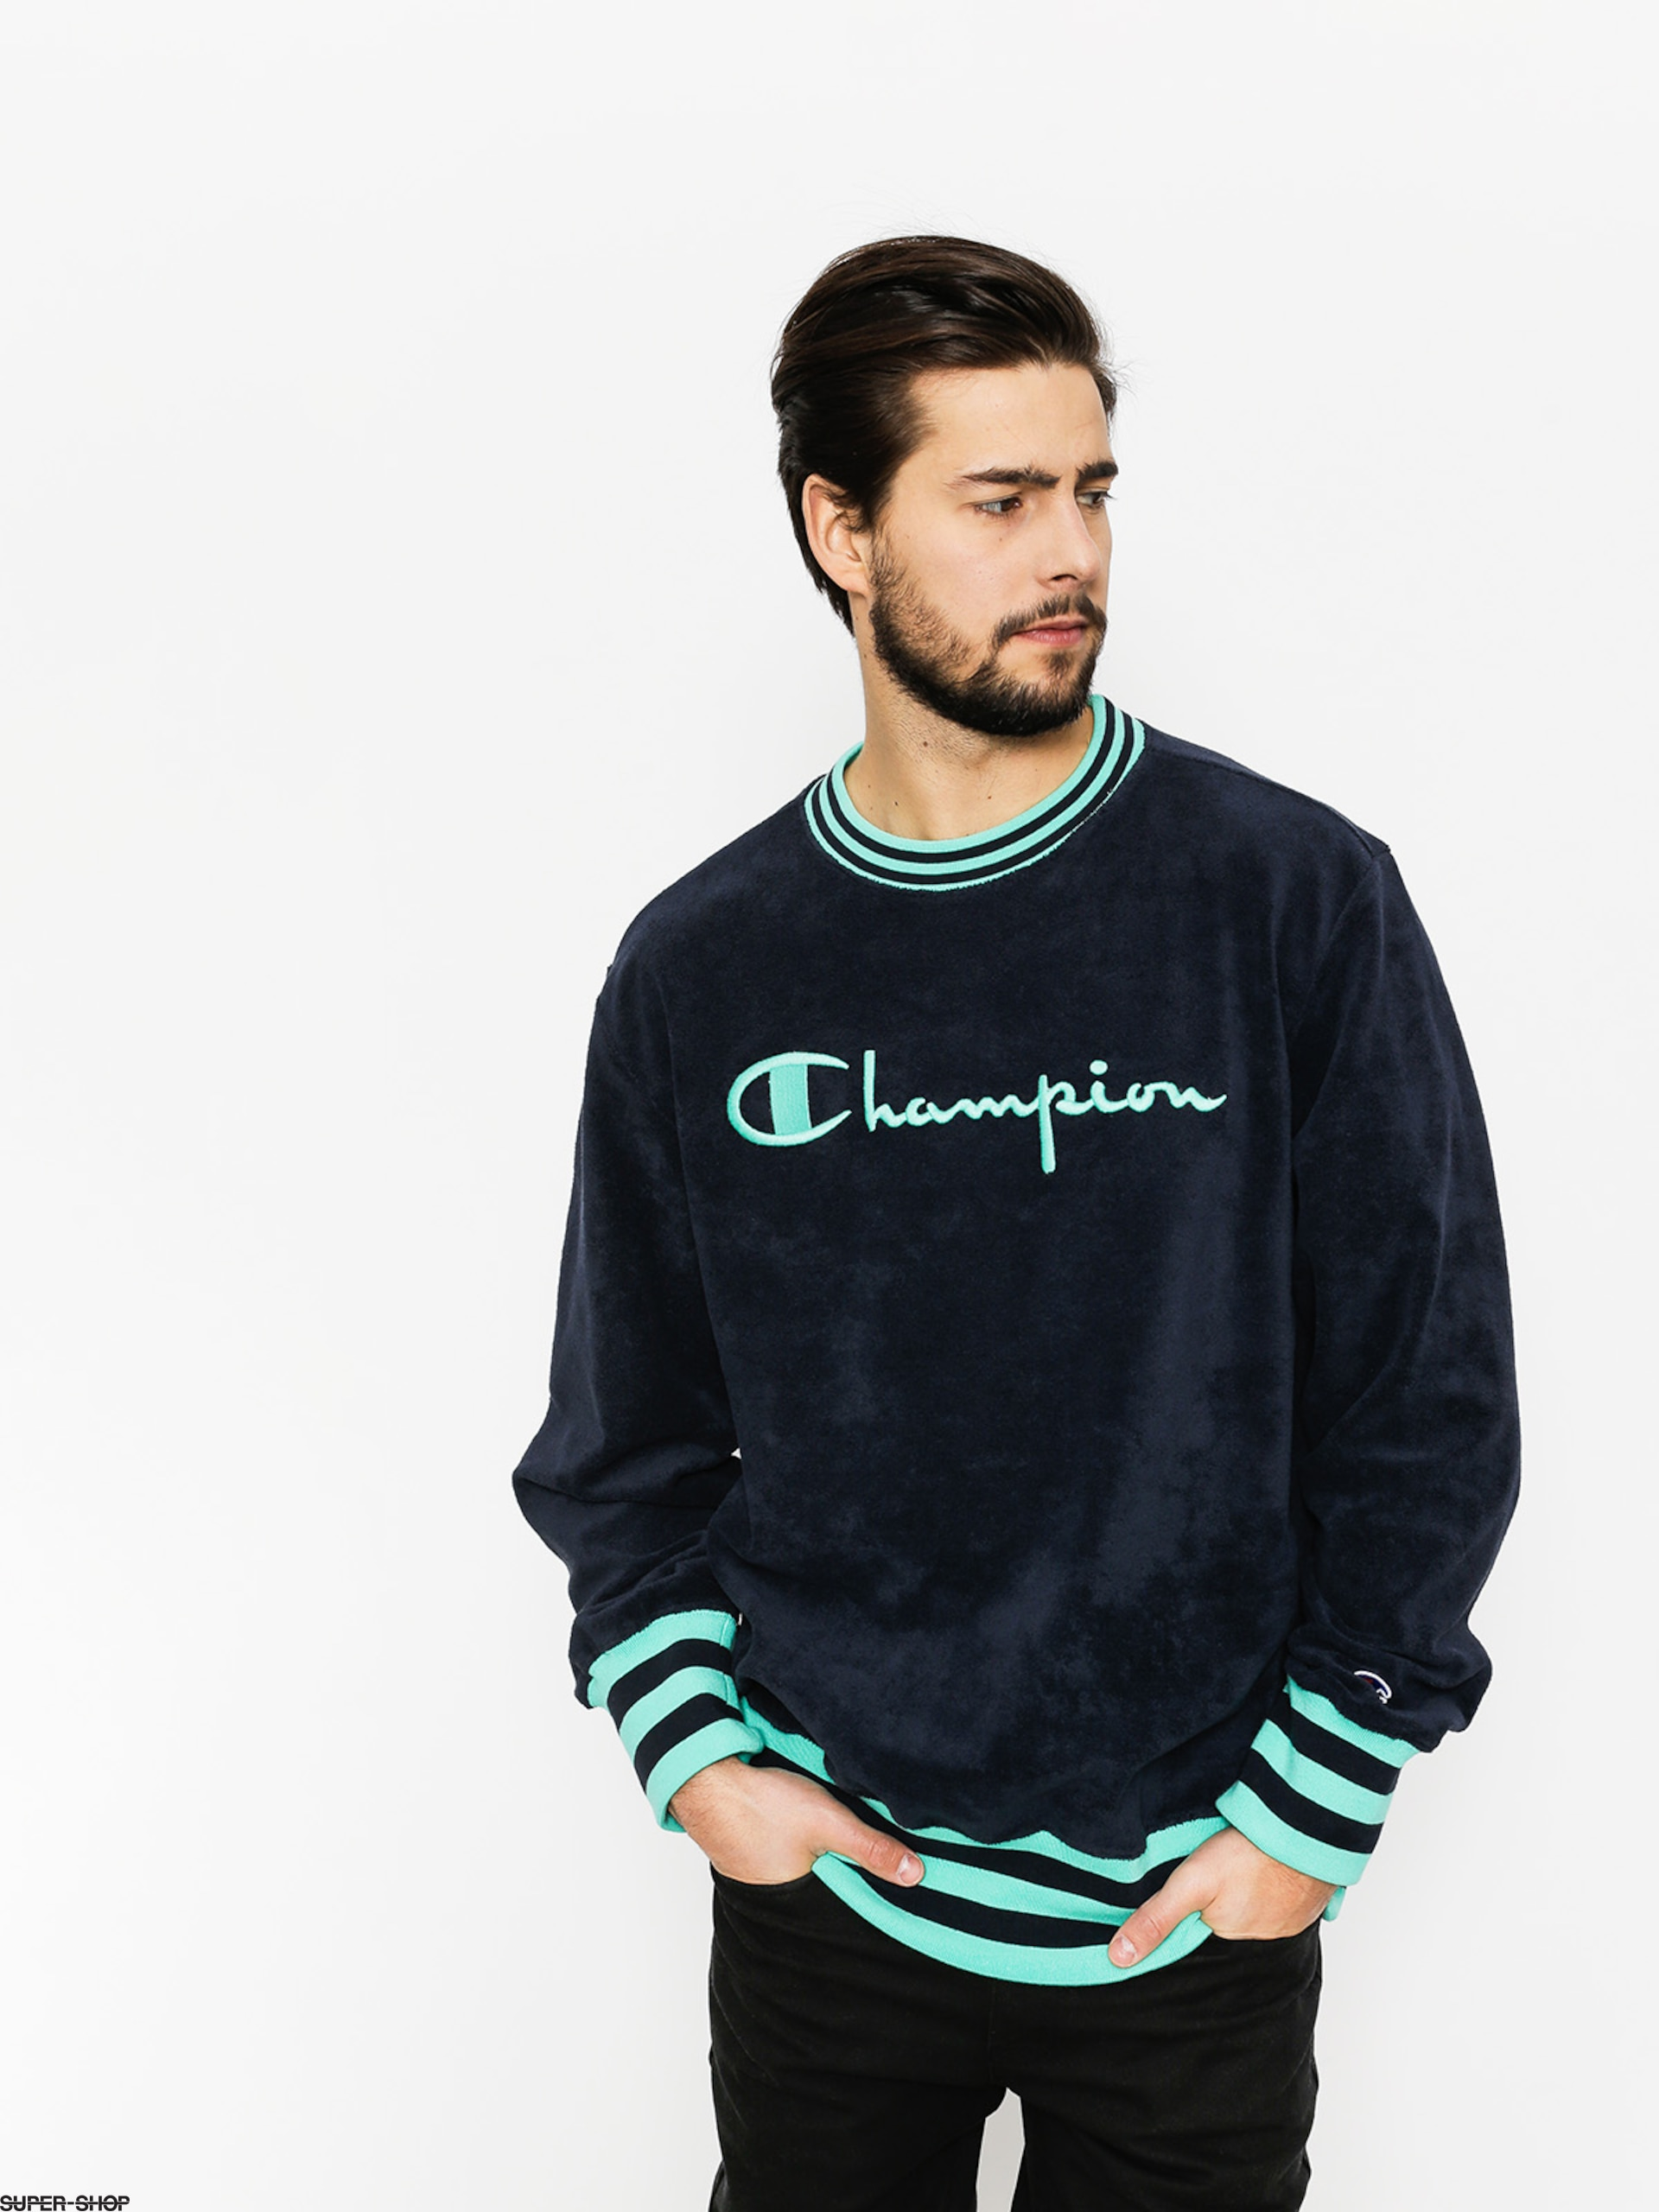 Champion Sweatshirt Crewneck Sweatshirt (nny/fly)